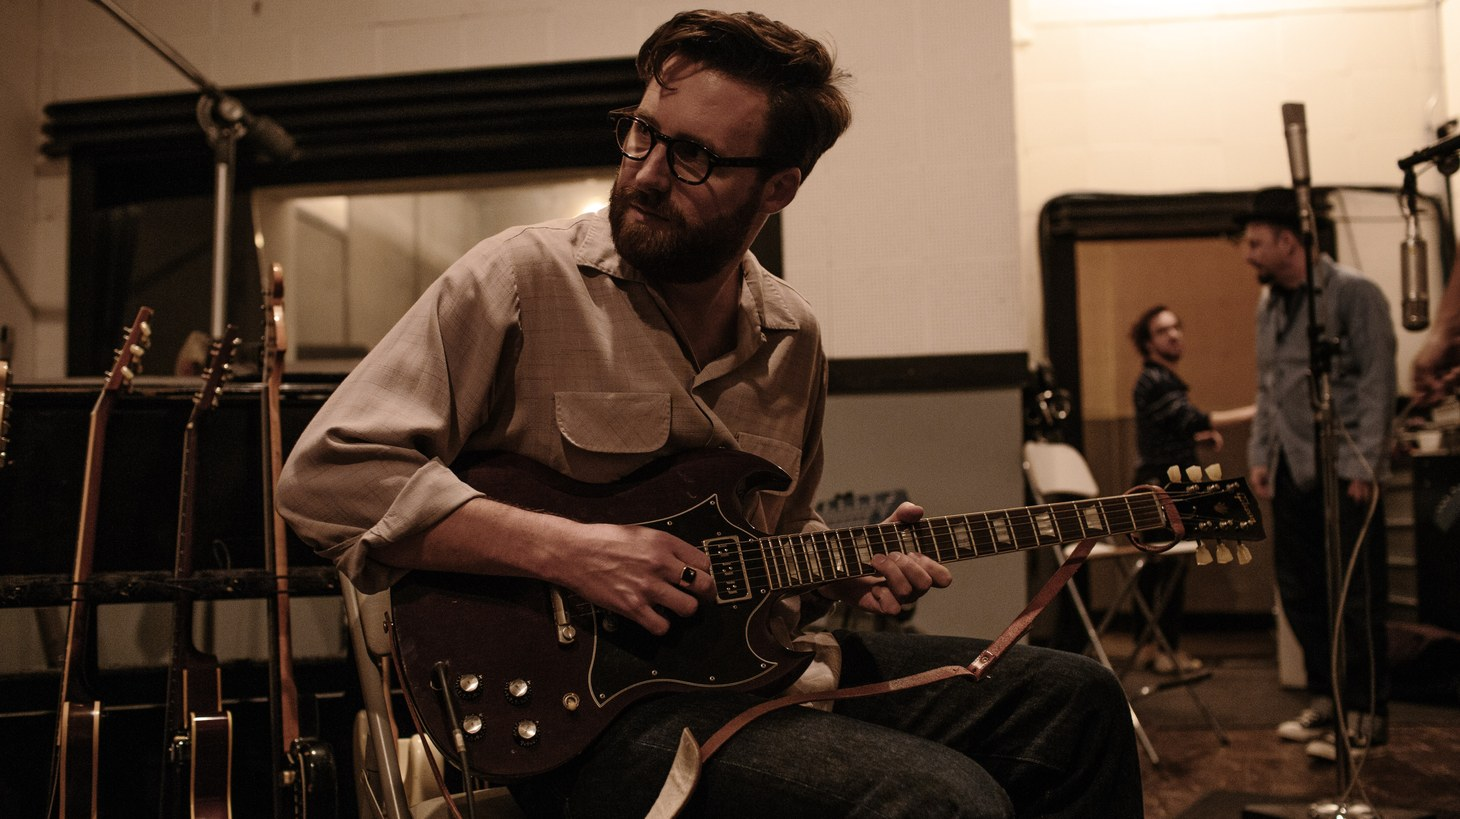 """A producer and player, Nick Waterhouse's fourth album is self-titled, hinting at a time of self-reflection through a batch of muscular songs. """"Songs For Winners"""" is full of passion."""